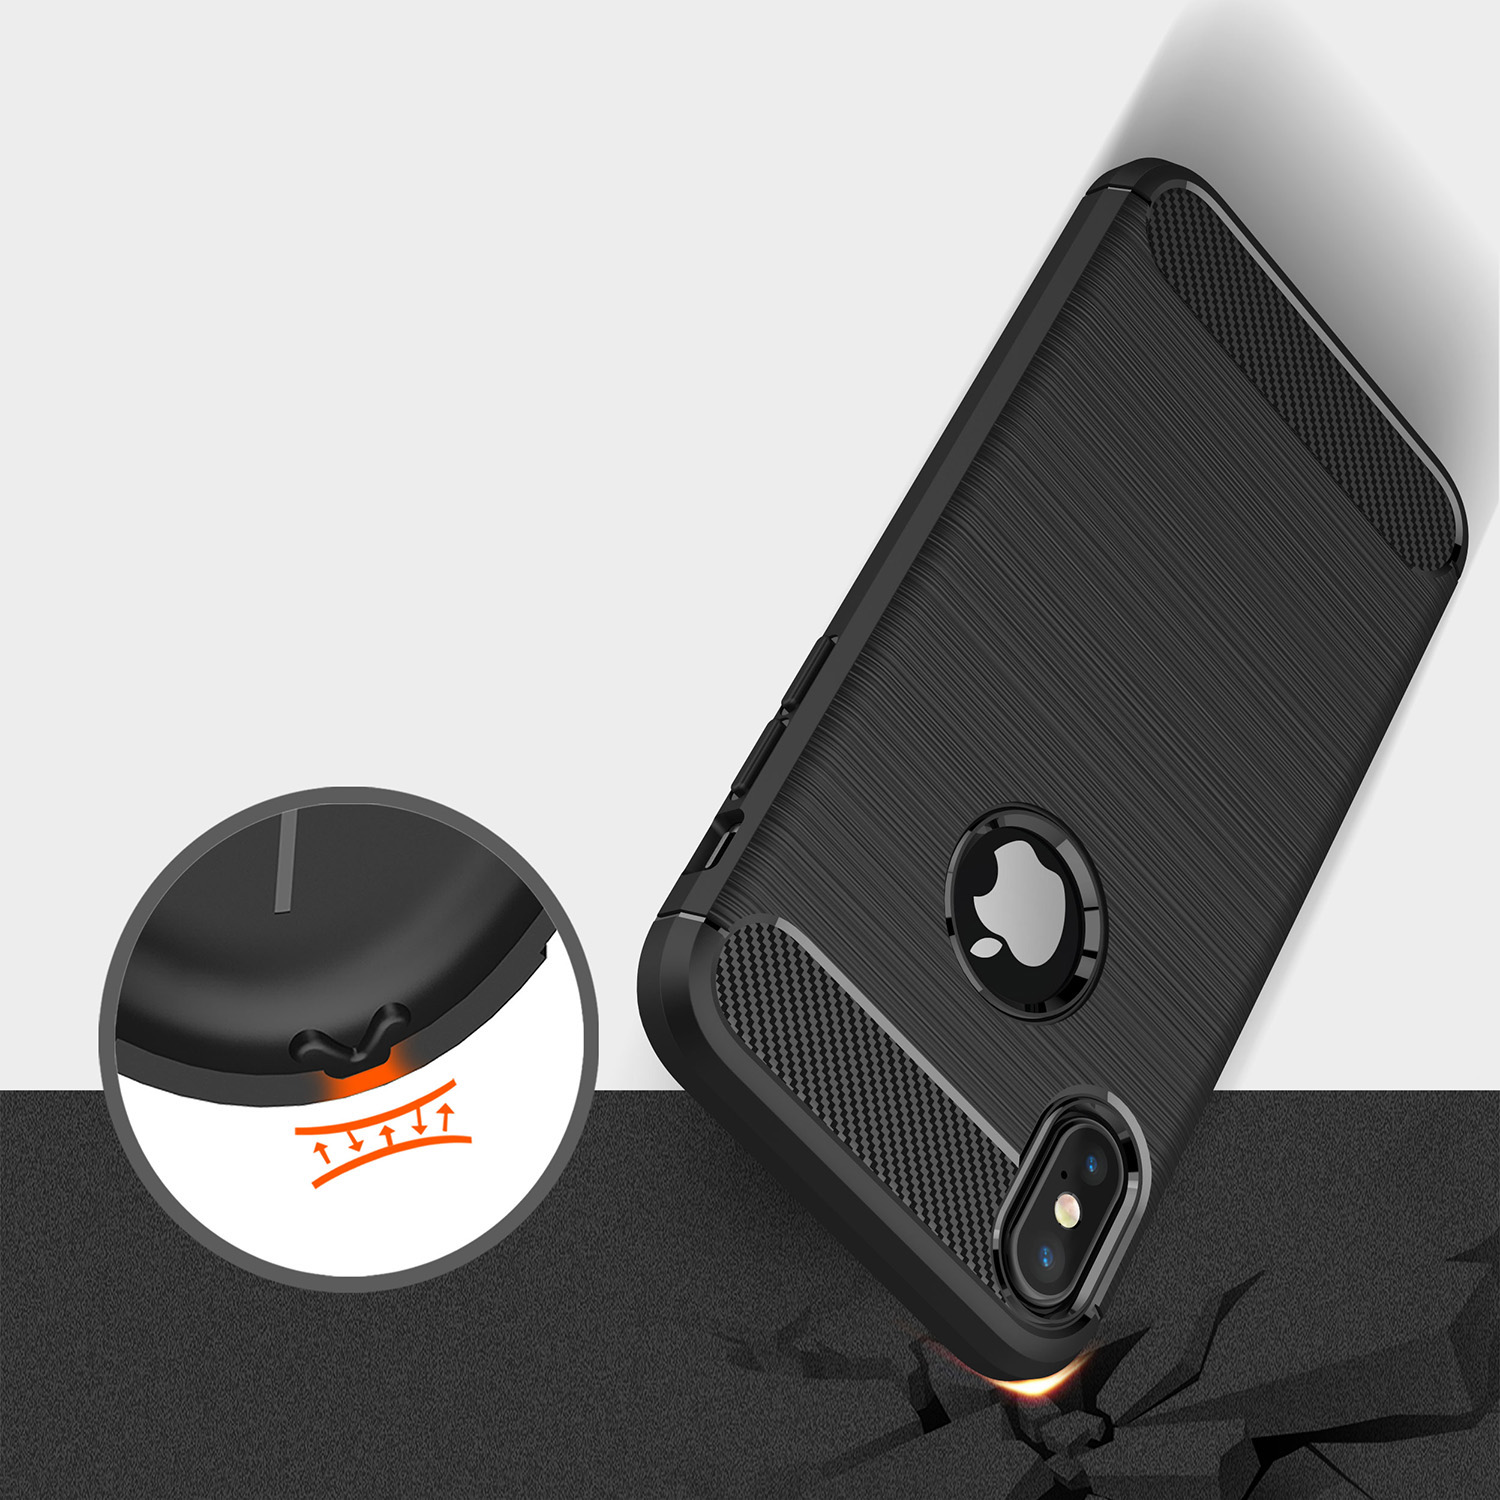 MillSO Case For Iphone X Mars